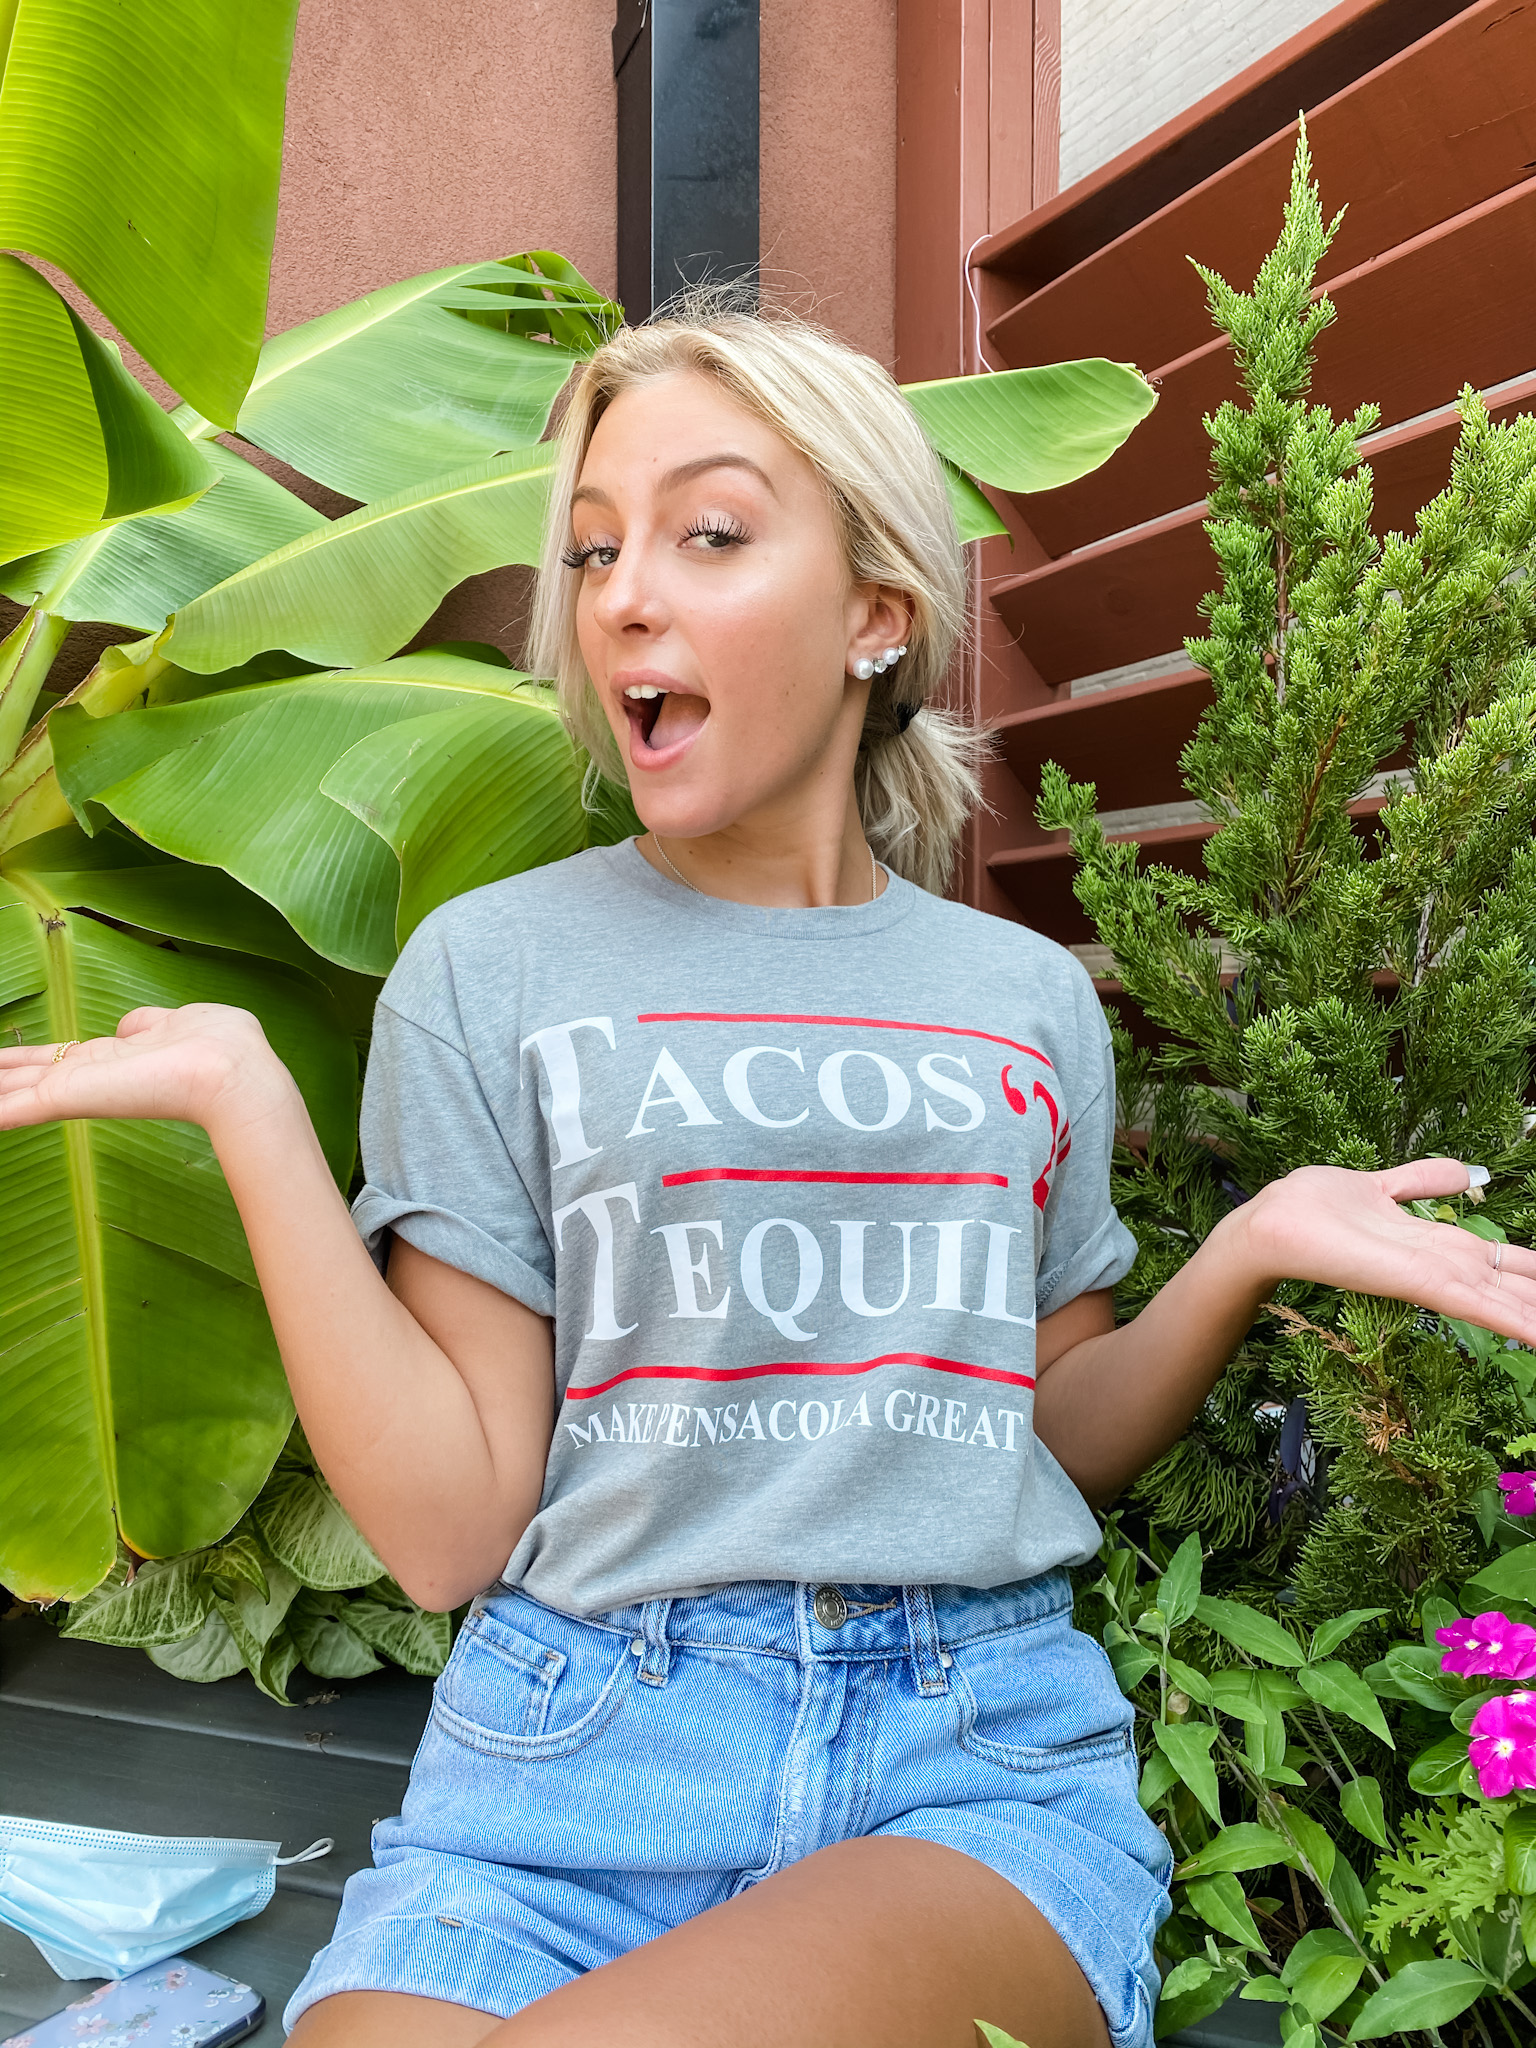 Tacos and Tequila 2020 Shirt - Gray